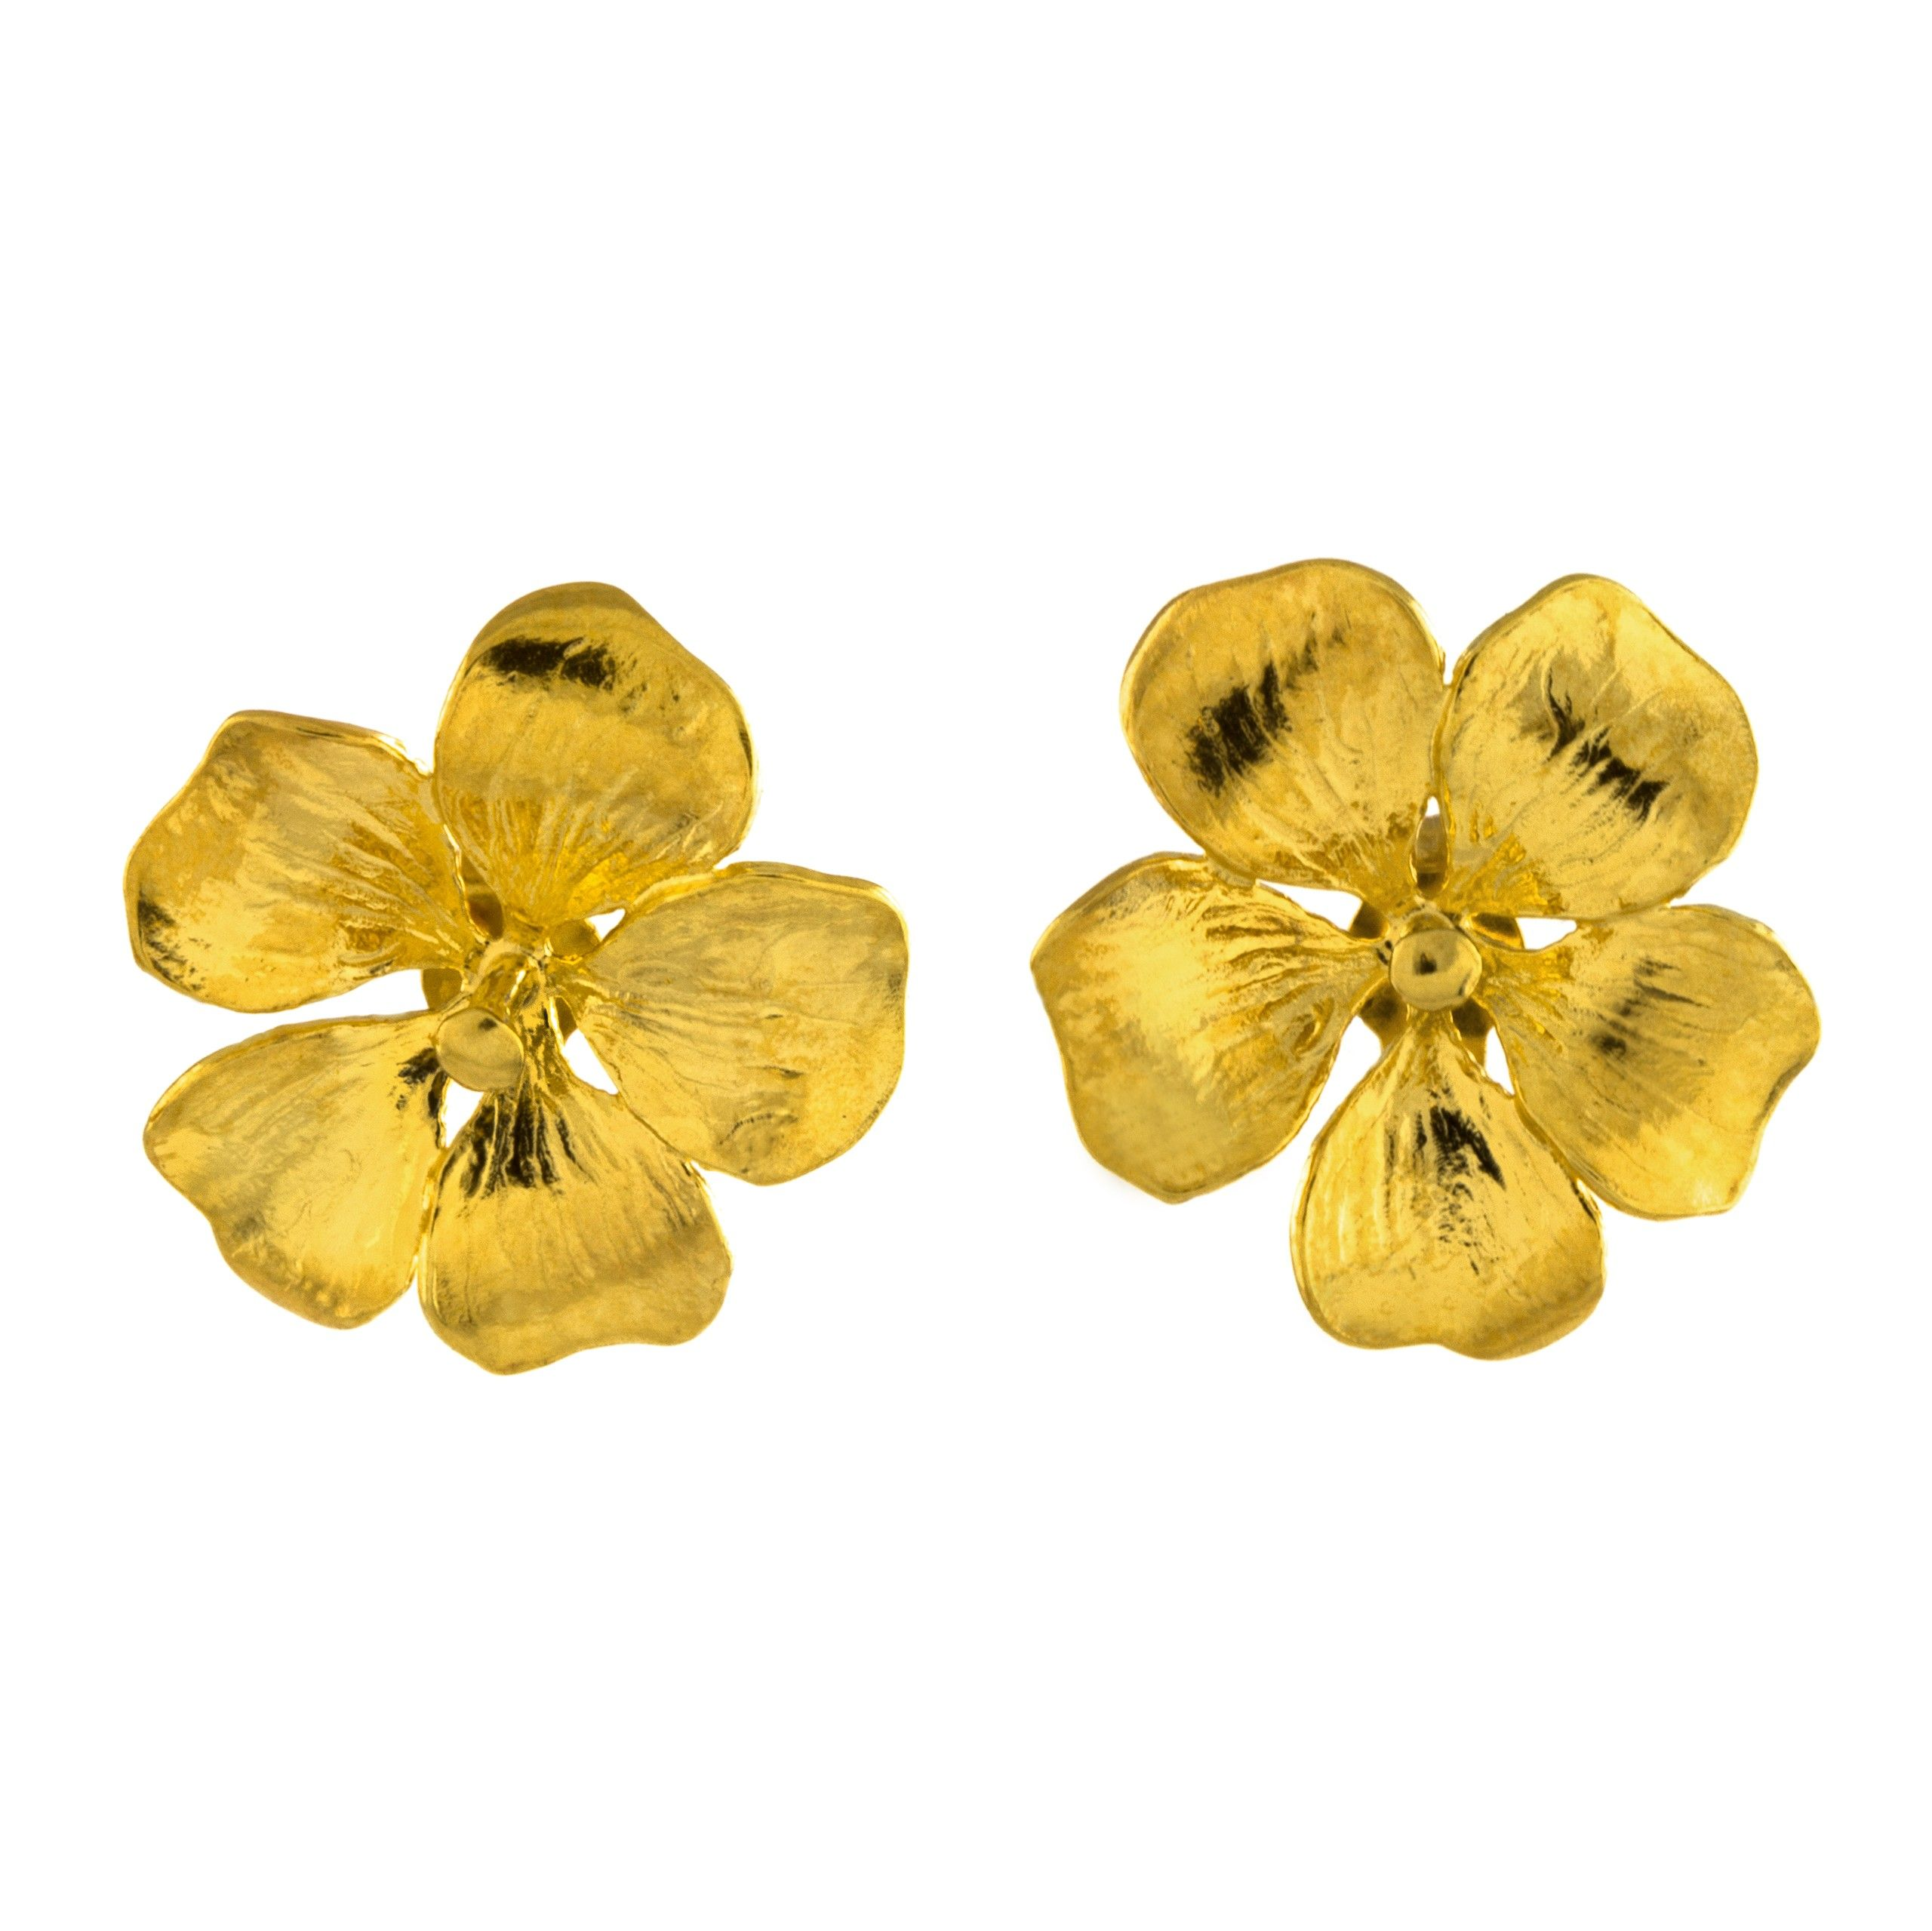 enamel buy earrings products big only at for flower rs cabb flauntandfun stud